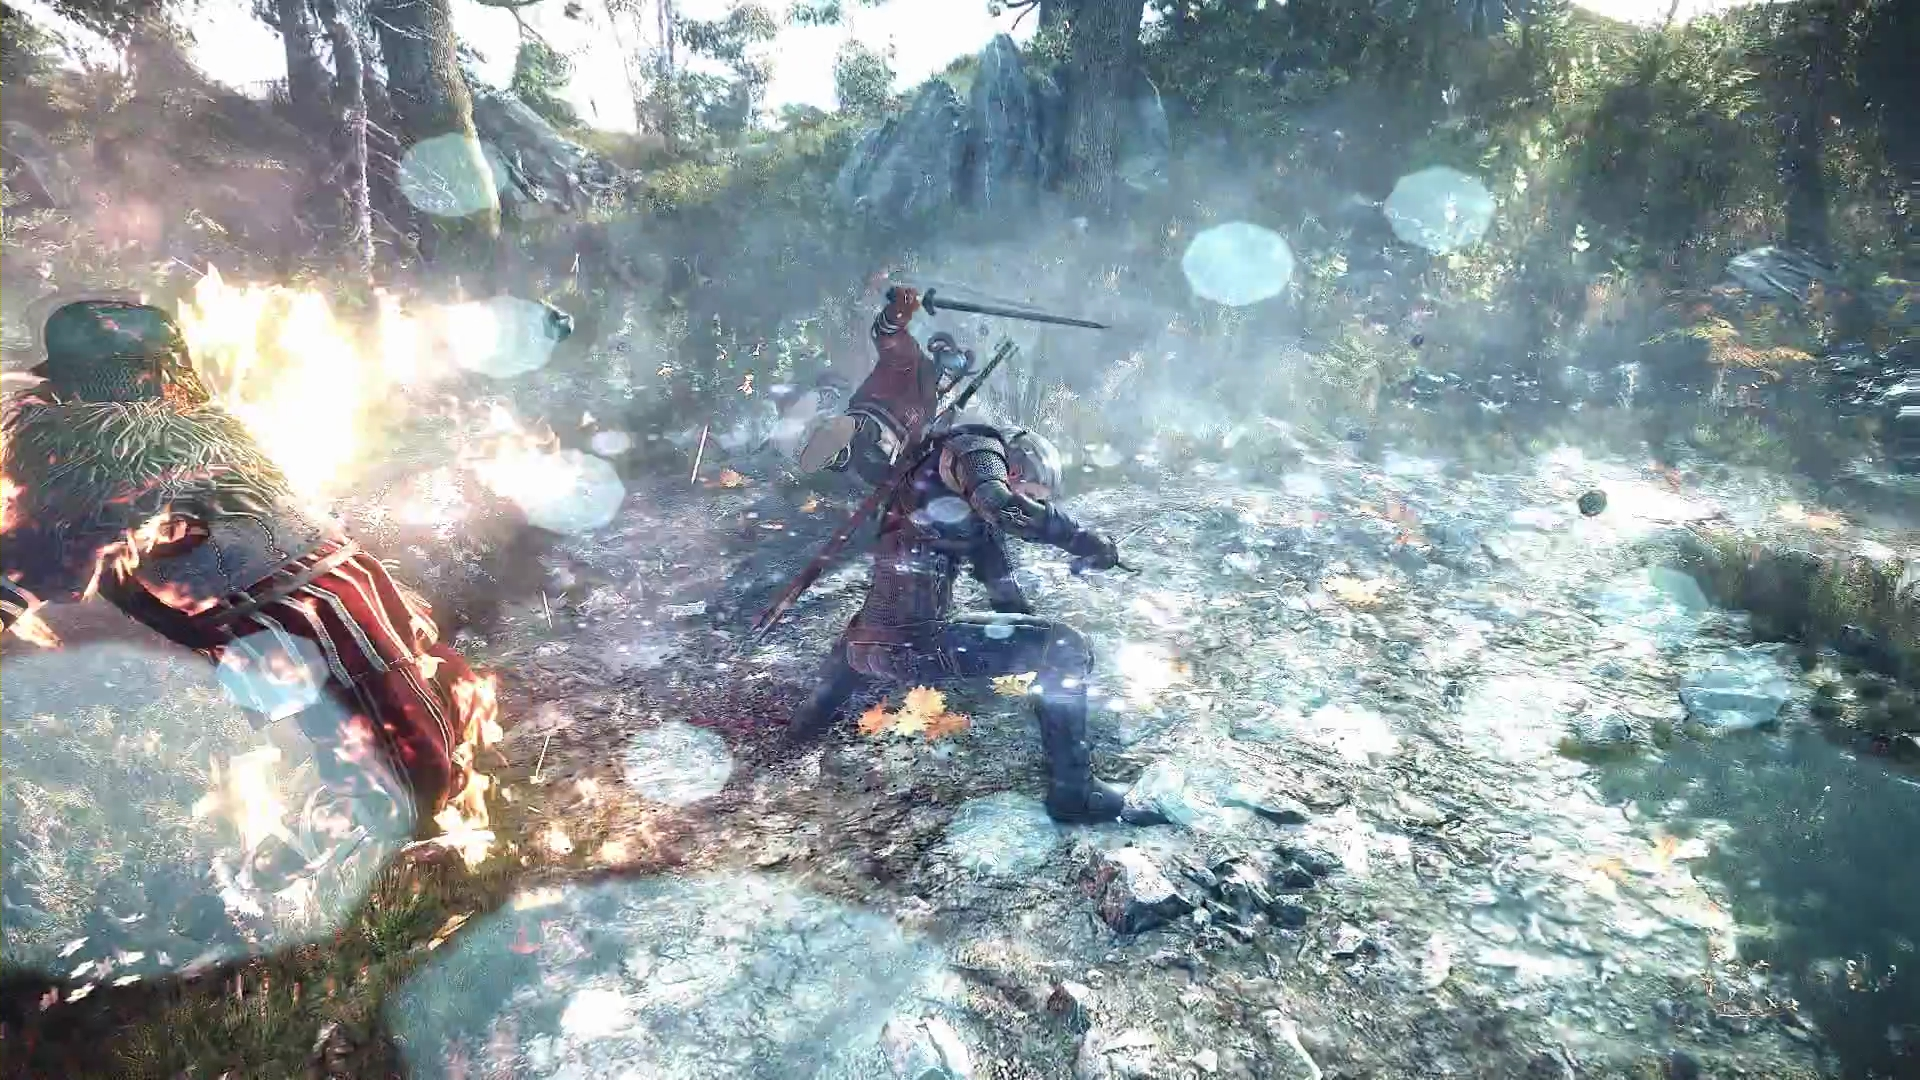 The witcher 3 wild hunt wallpapers pictures images the witcher 3 wild hunt full hd wallpaper voltagebd Images